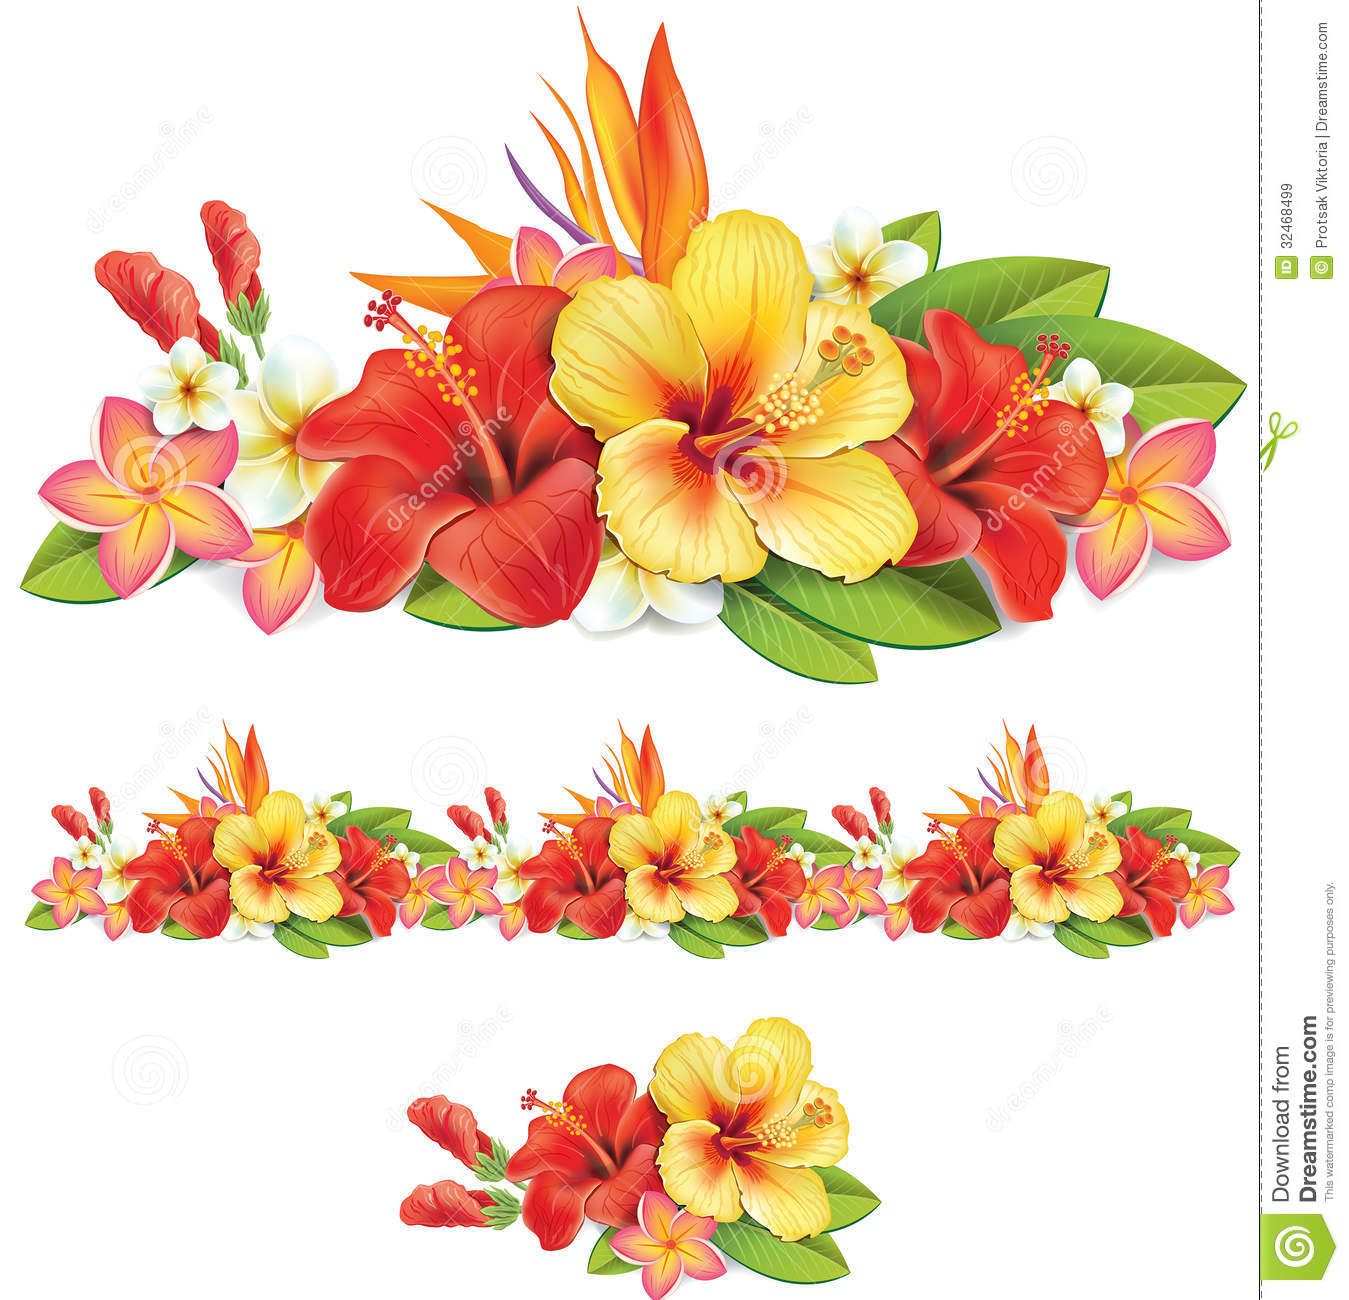 Plumeria clipart border Of pictures exotic flowers of